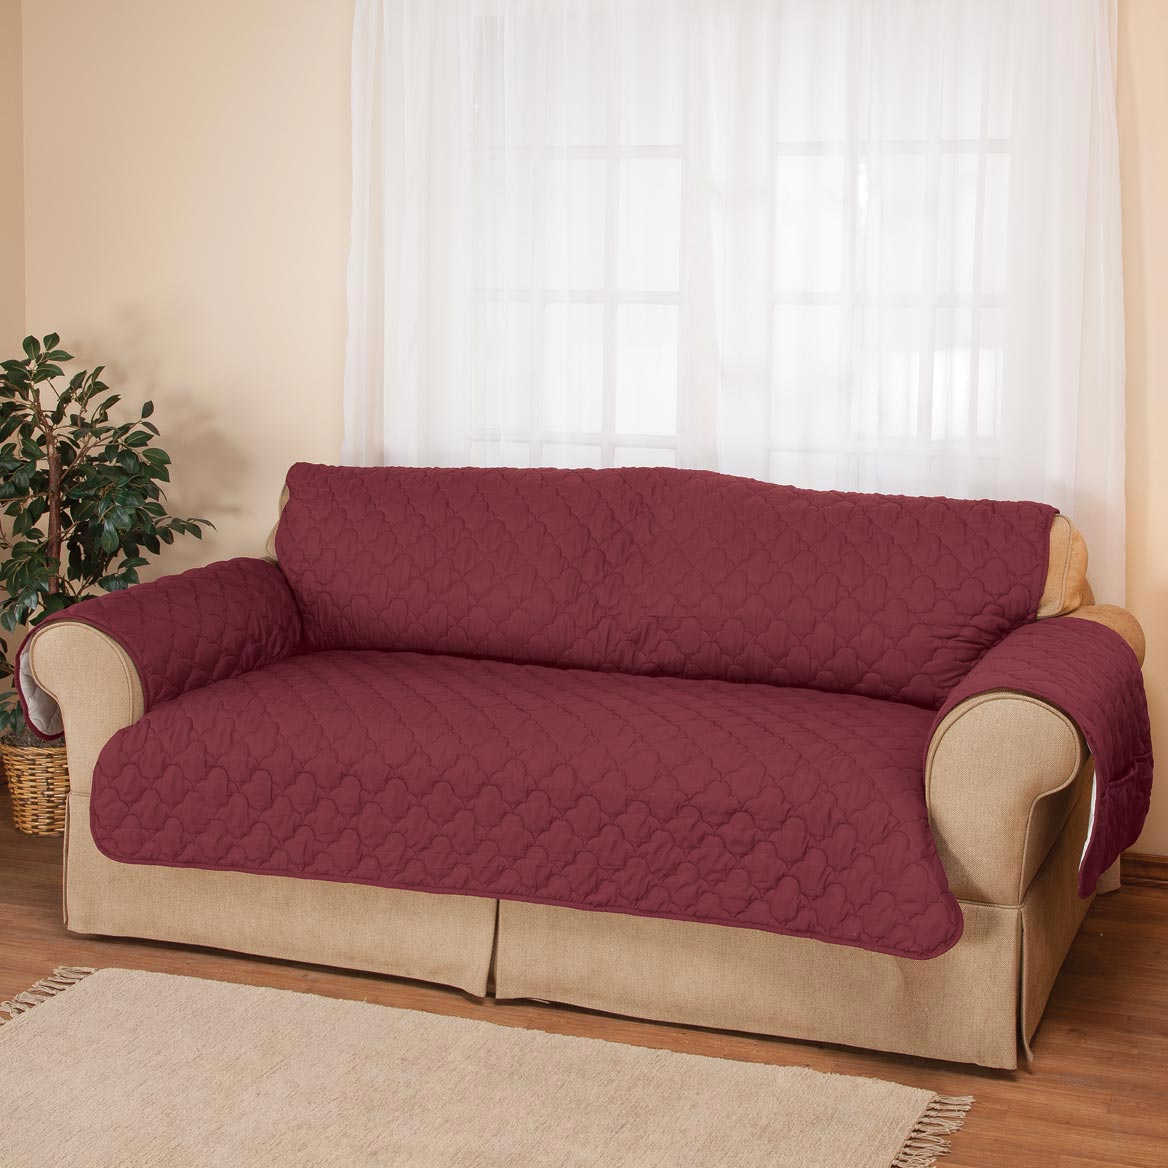 Deluxe Microfiber XL Sofa Cover By OakRidgeTM